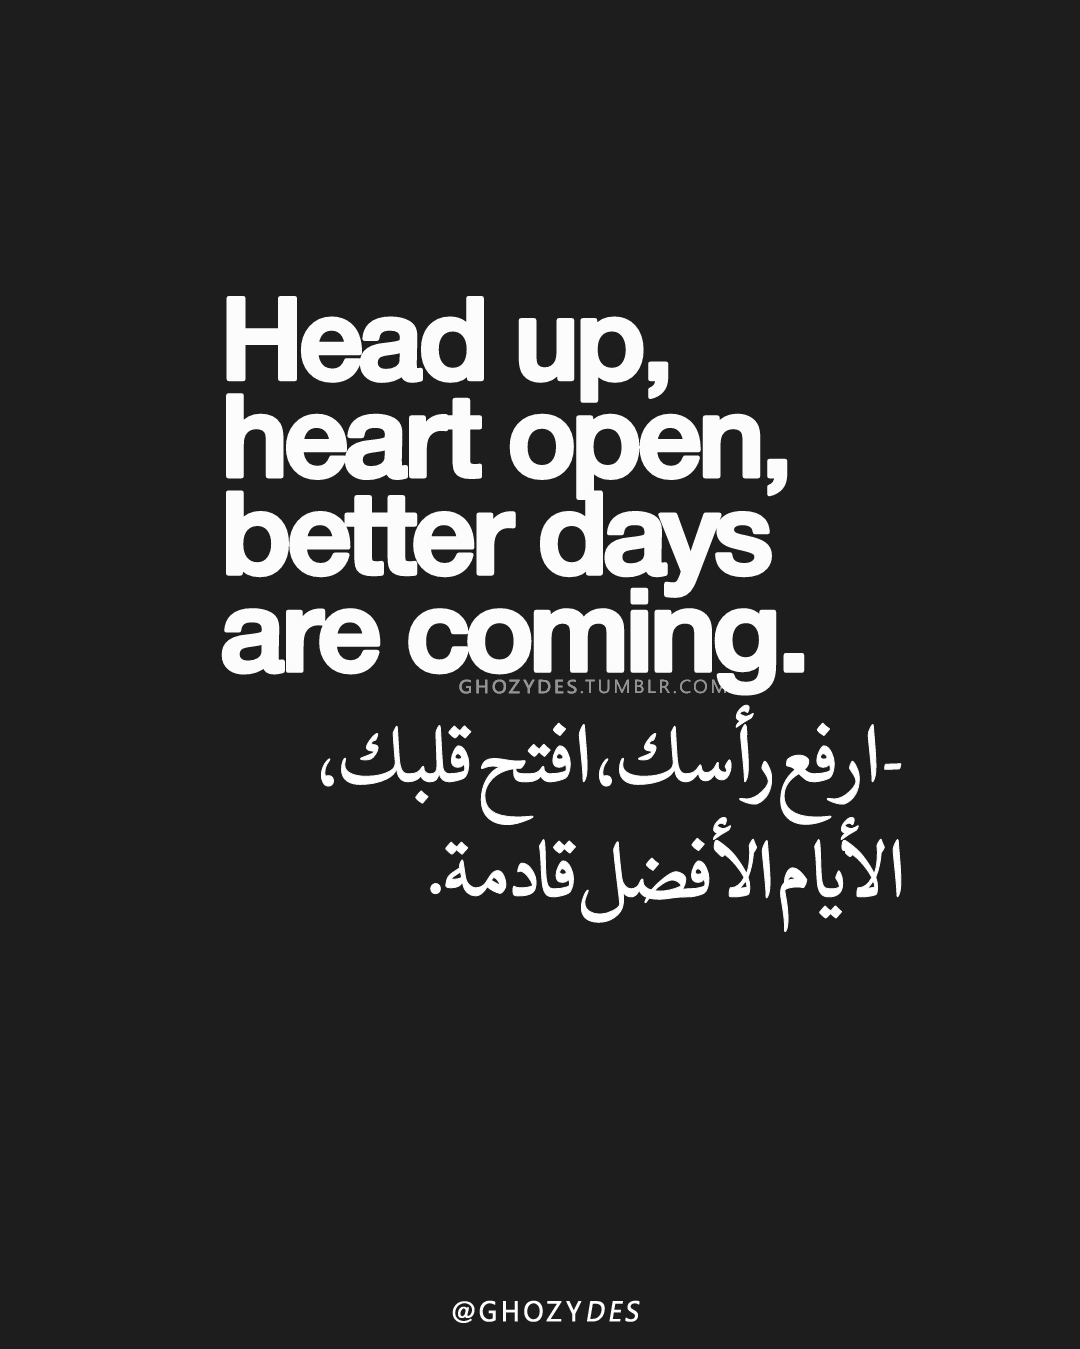 Ghozydes الأيام الأفضل قادمة Better Days Are Coming Ghozydes Pretty Words Arabic English Quotes Better Days Are Coming